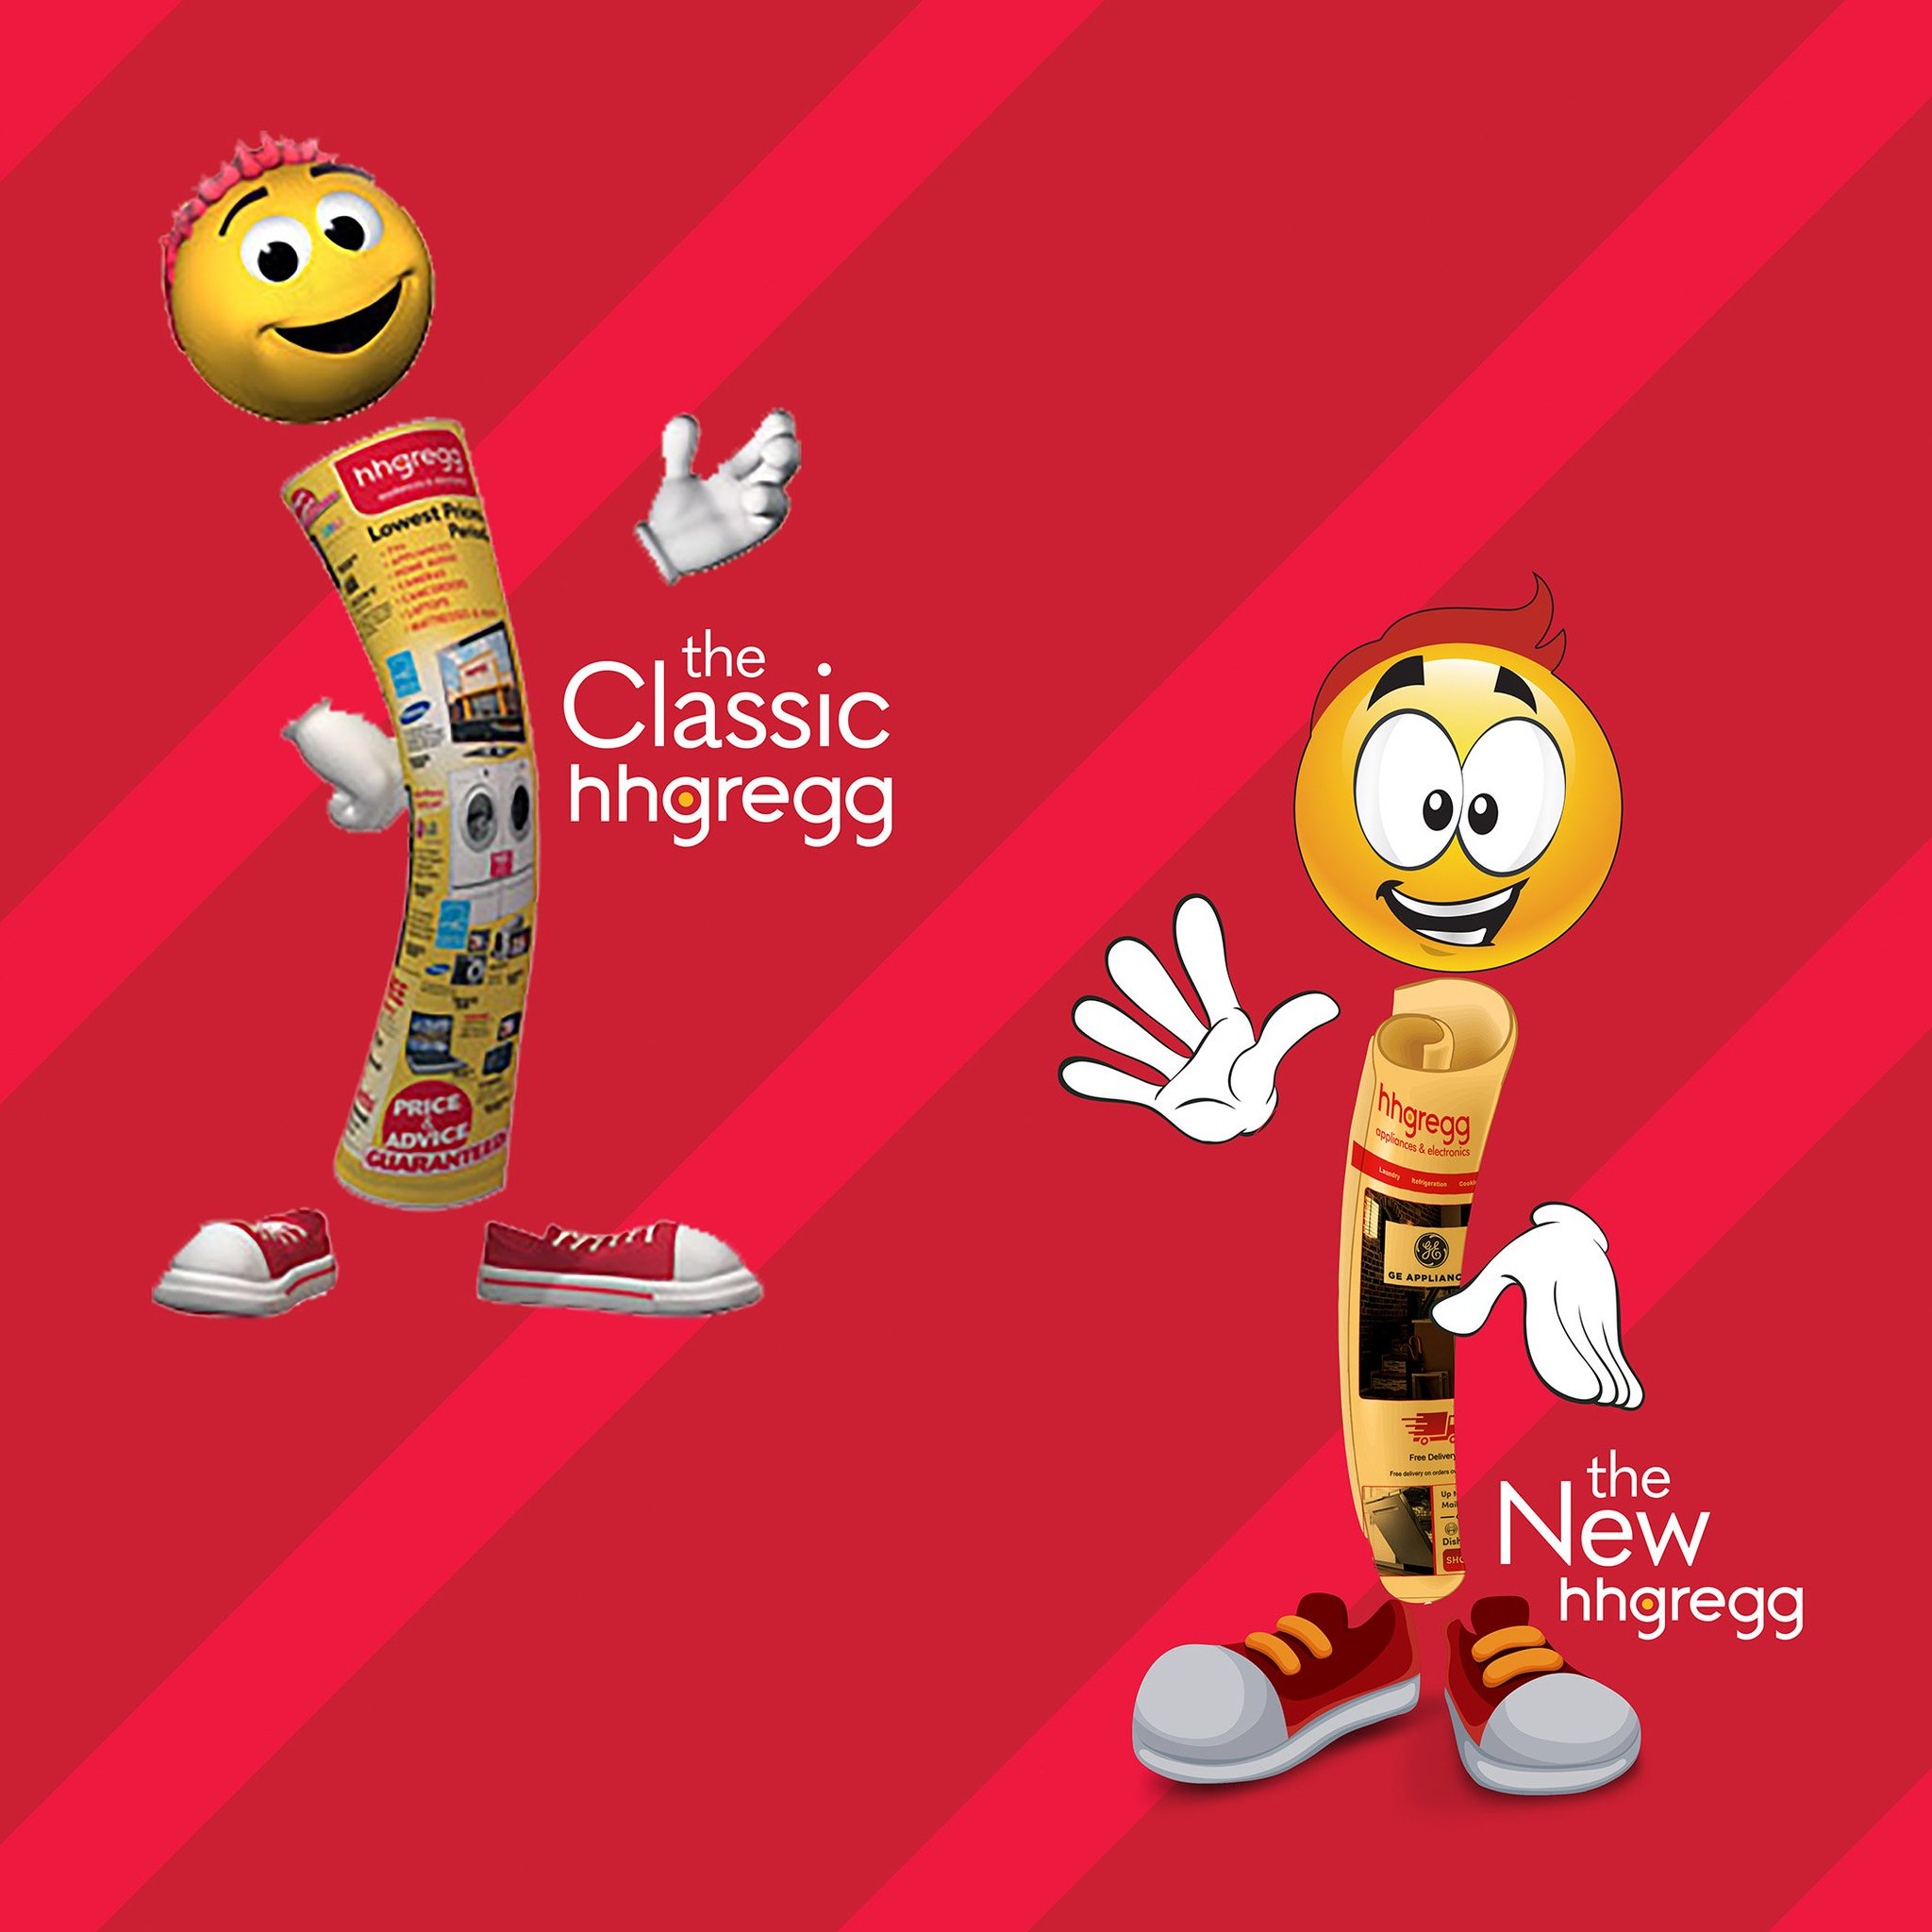 Hhgregg On Twitter So We Re Relaunching And We Ve Been Debating